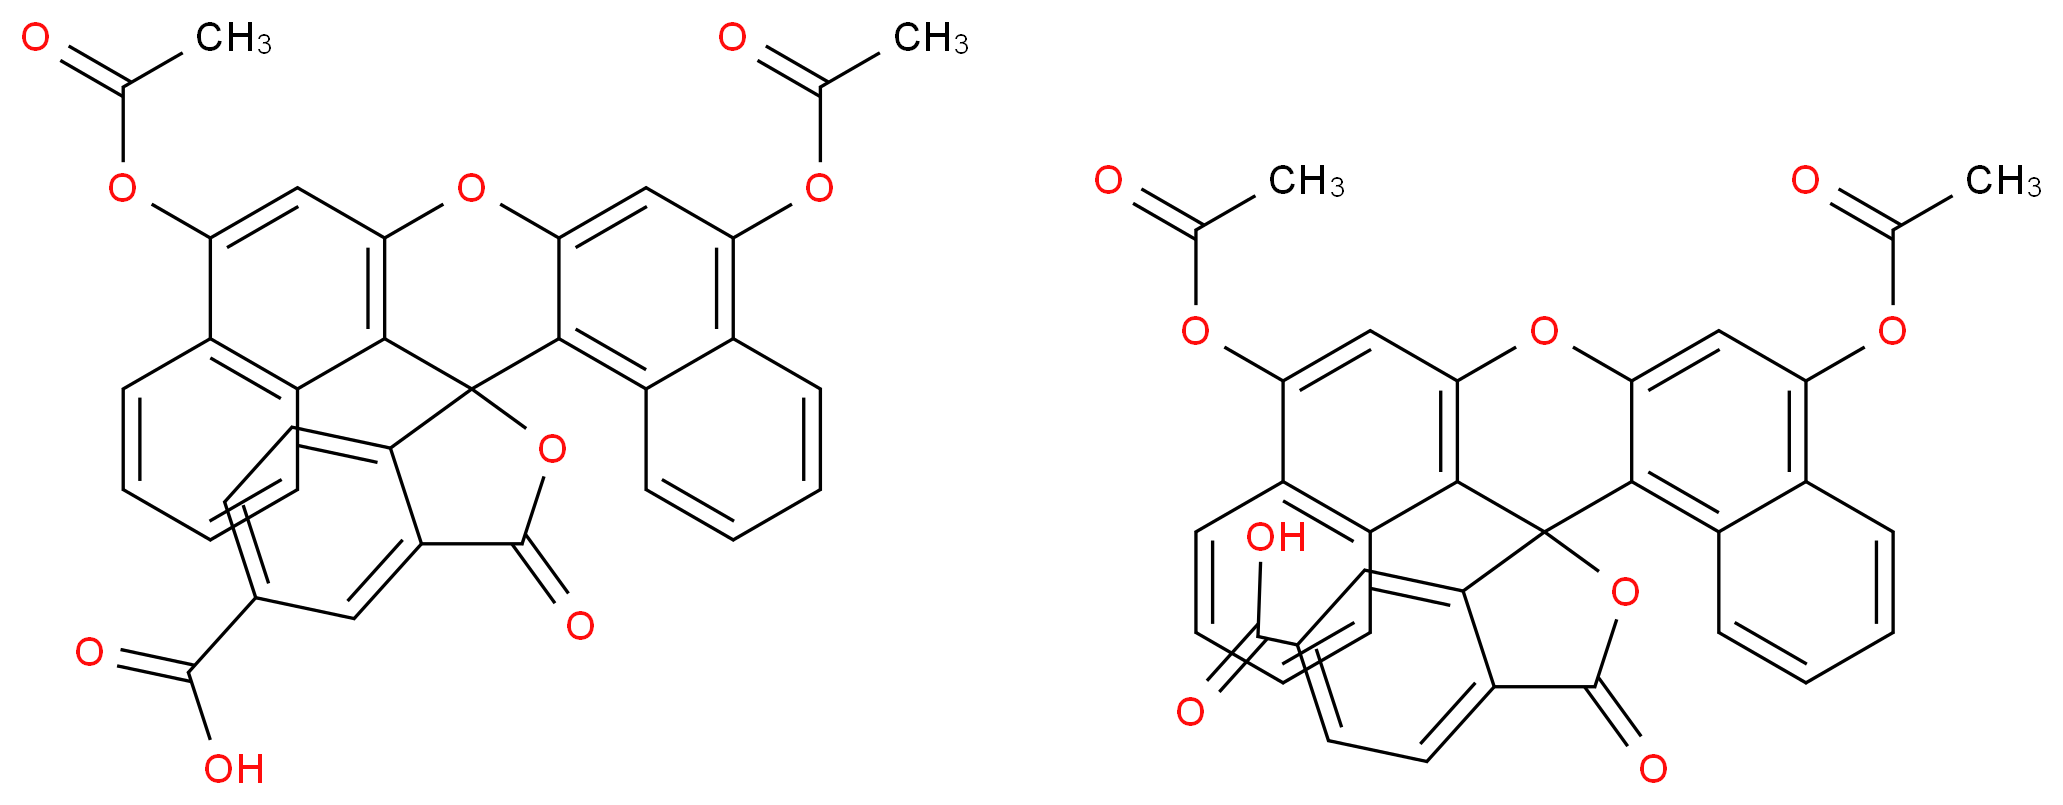 5(6)-Carboxynaphthofluorescein diacetate_分子结构_CAS_163831-68-3)